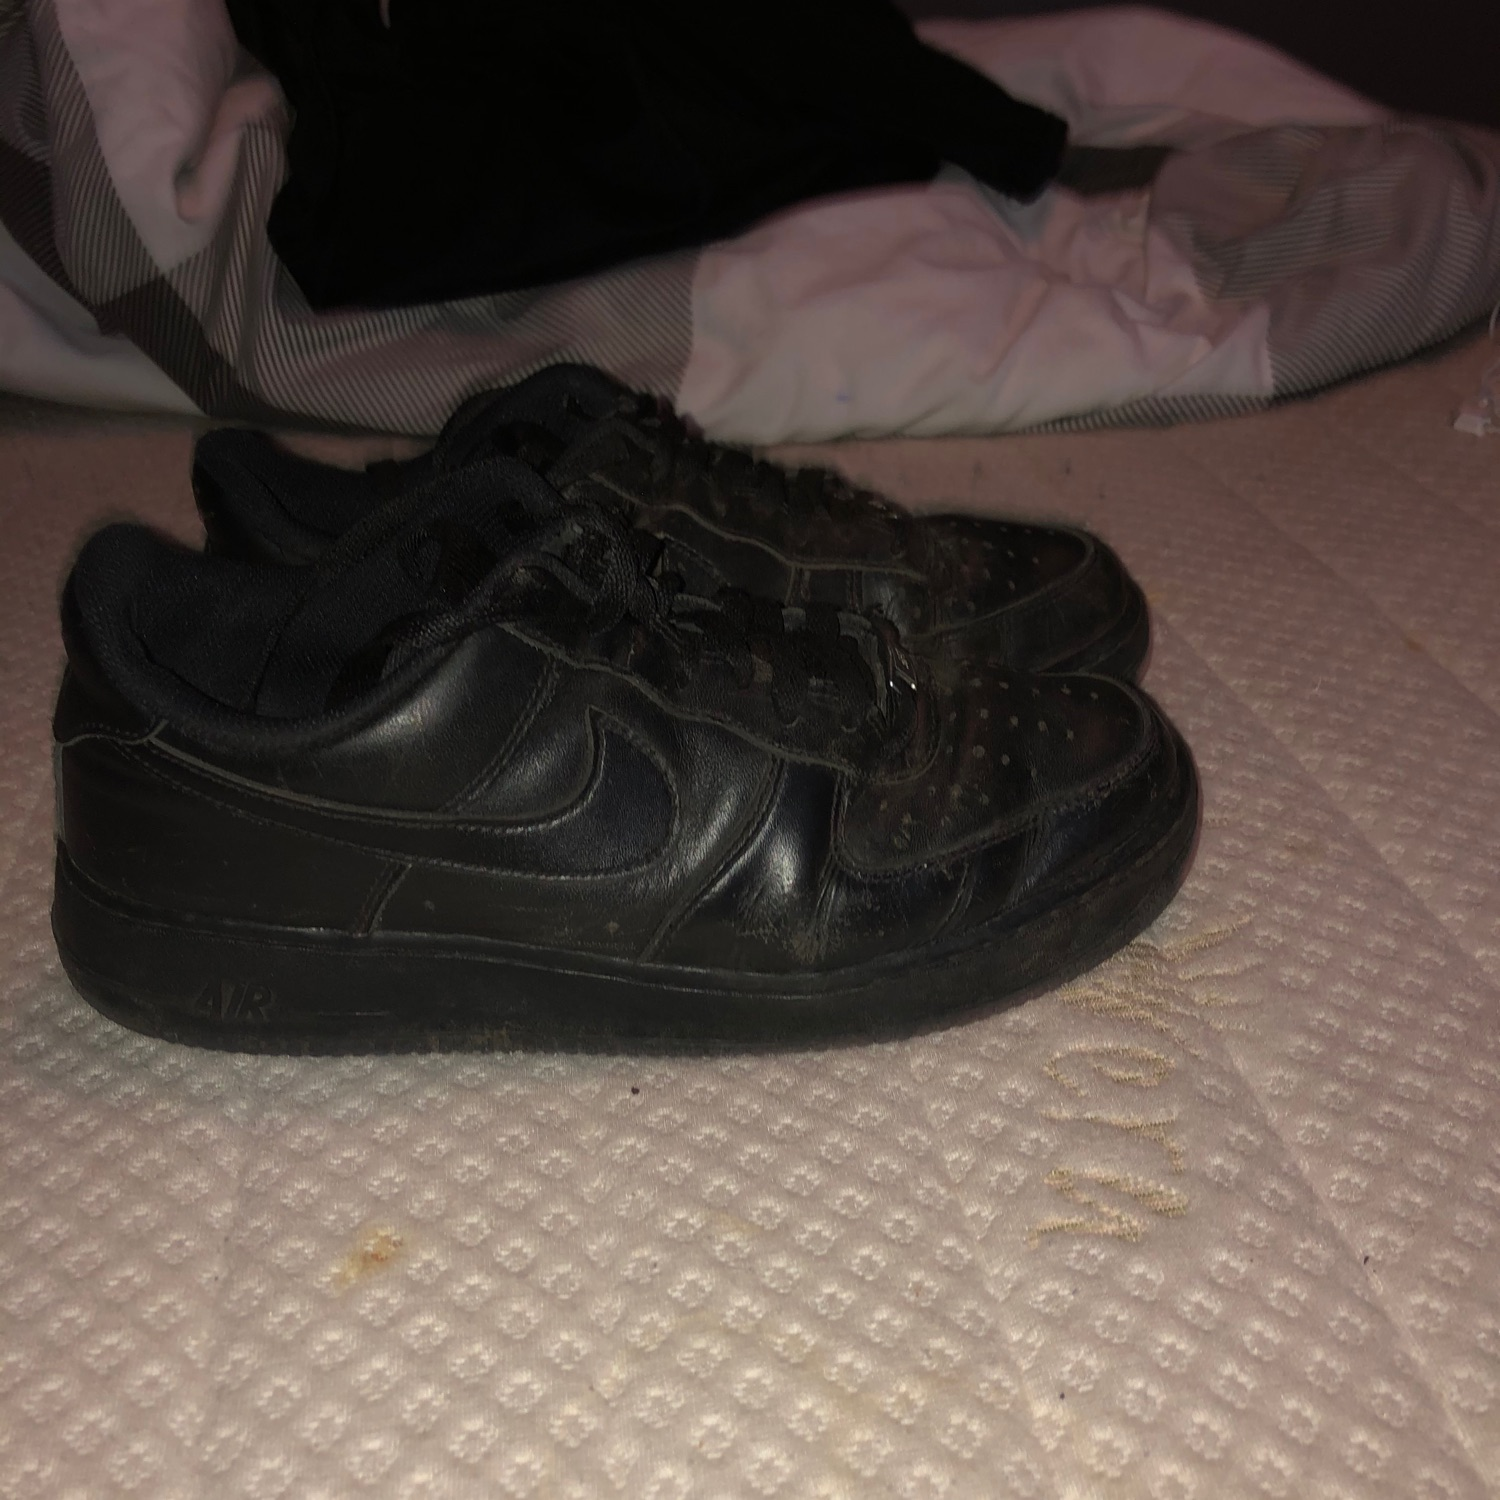 Air Force 1 Black Size 8